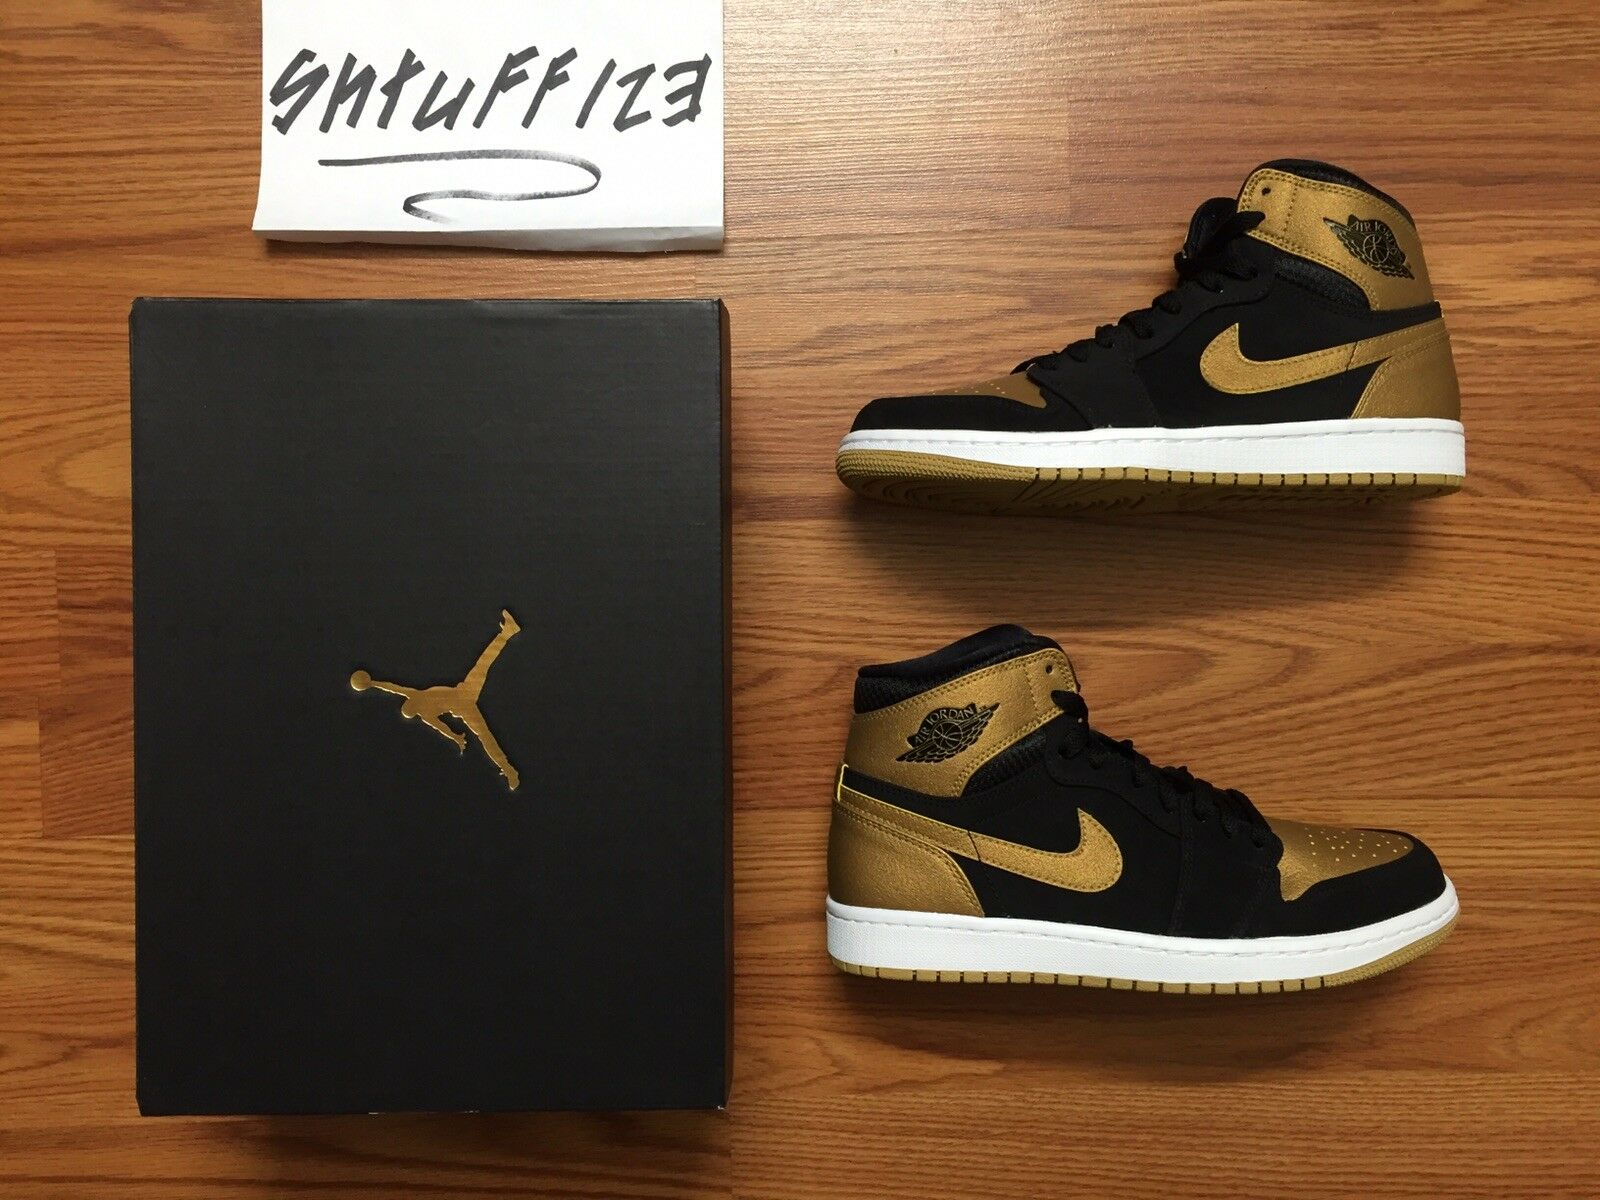 Nike Air Jordan 1 Melo Retro Retro Retro Black gold Carmelo Anthony 332550-026 Size 7.5 Mens c1905e